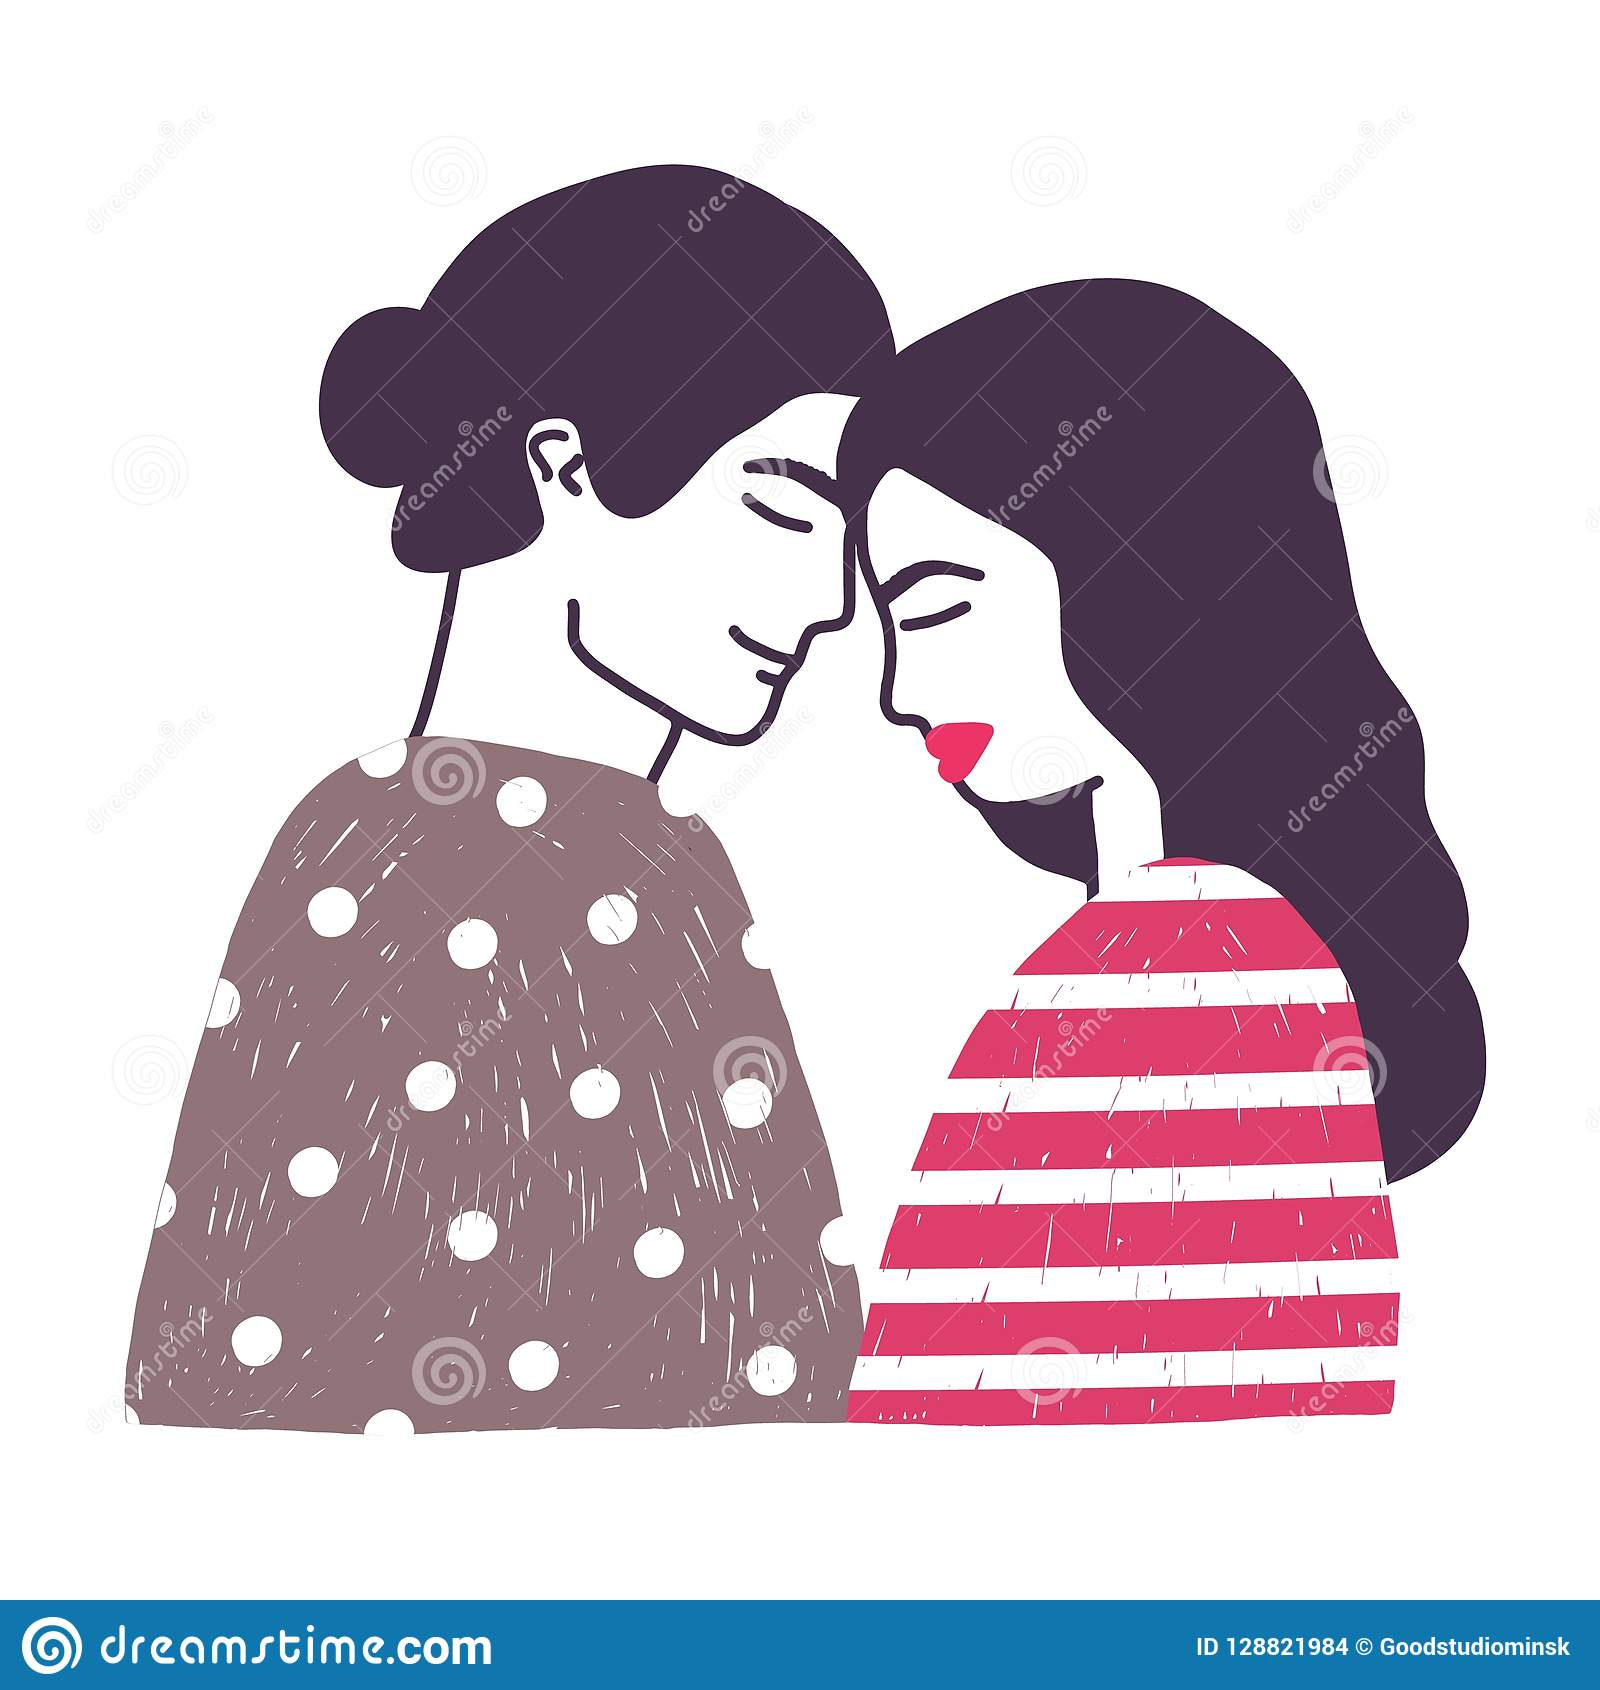 Drawing Of Cute Young Romantic Couple Or Pair Of Man And Woman In